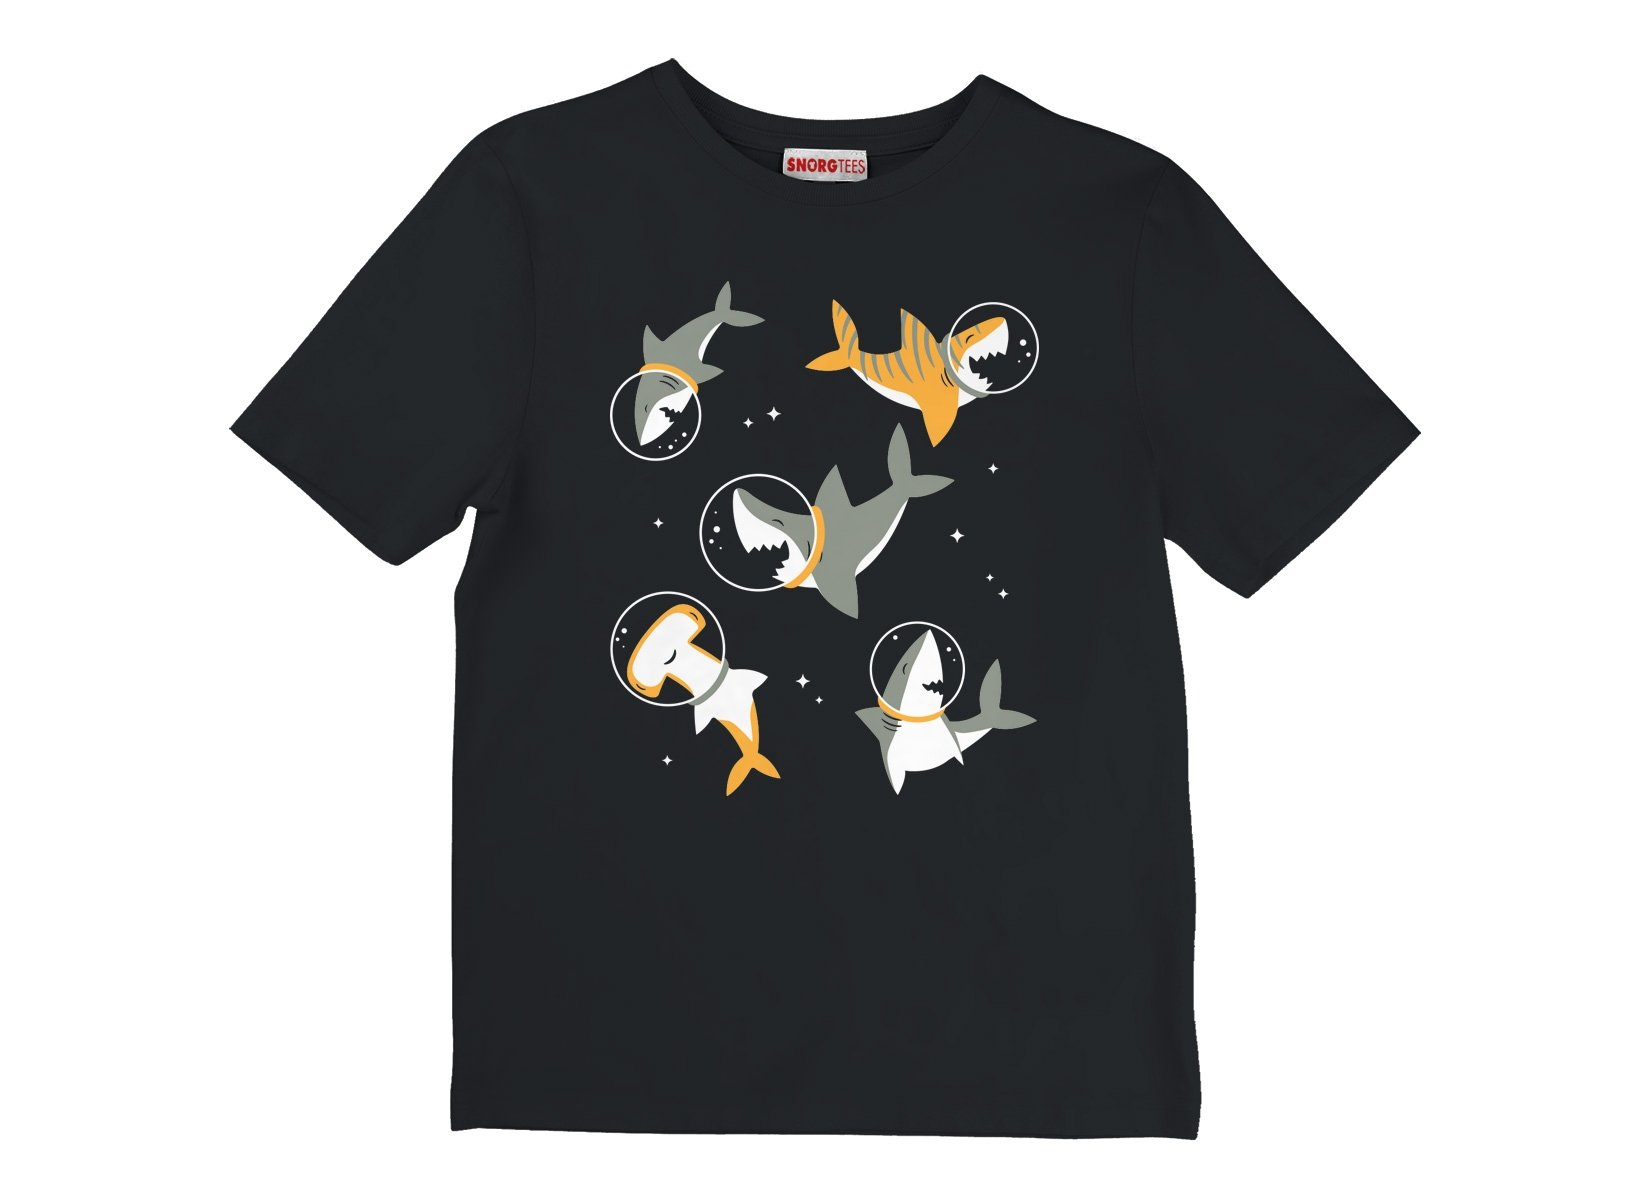 Sharks In Space on Kids T-Shirt